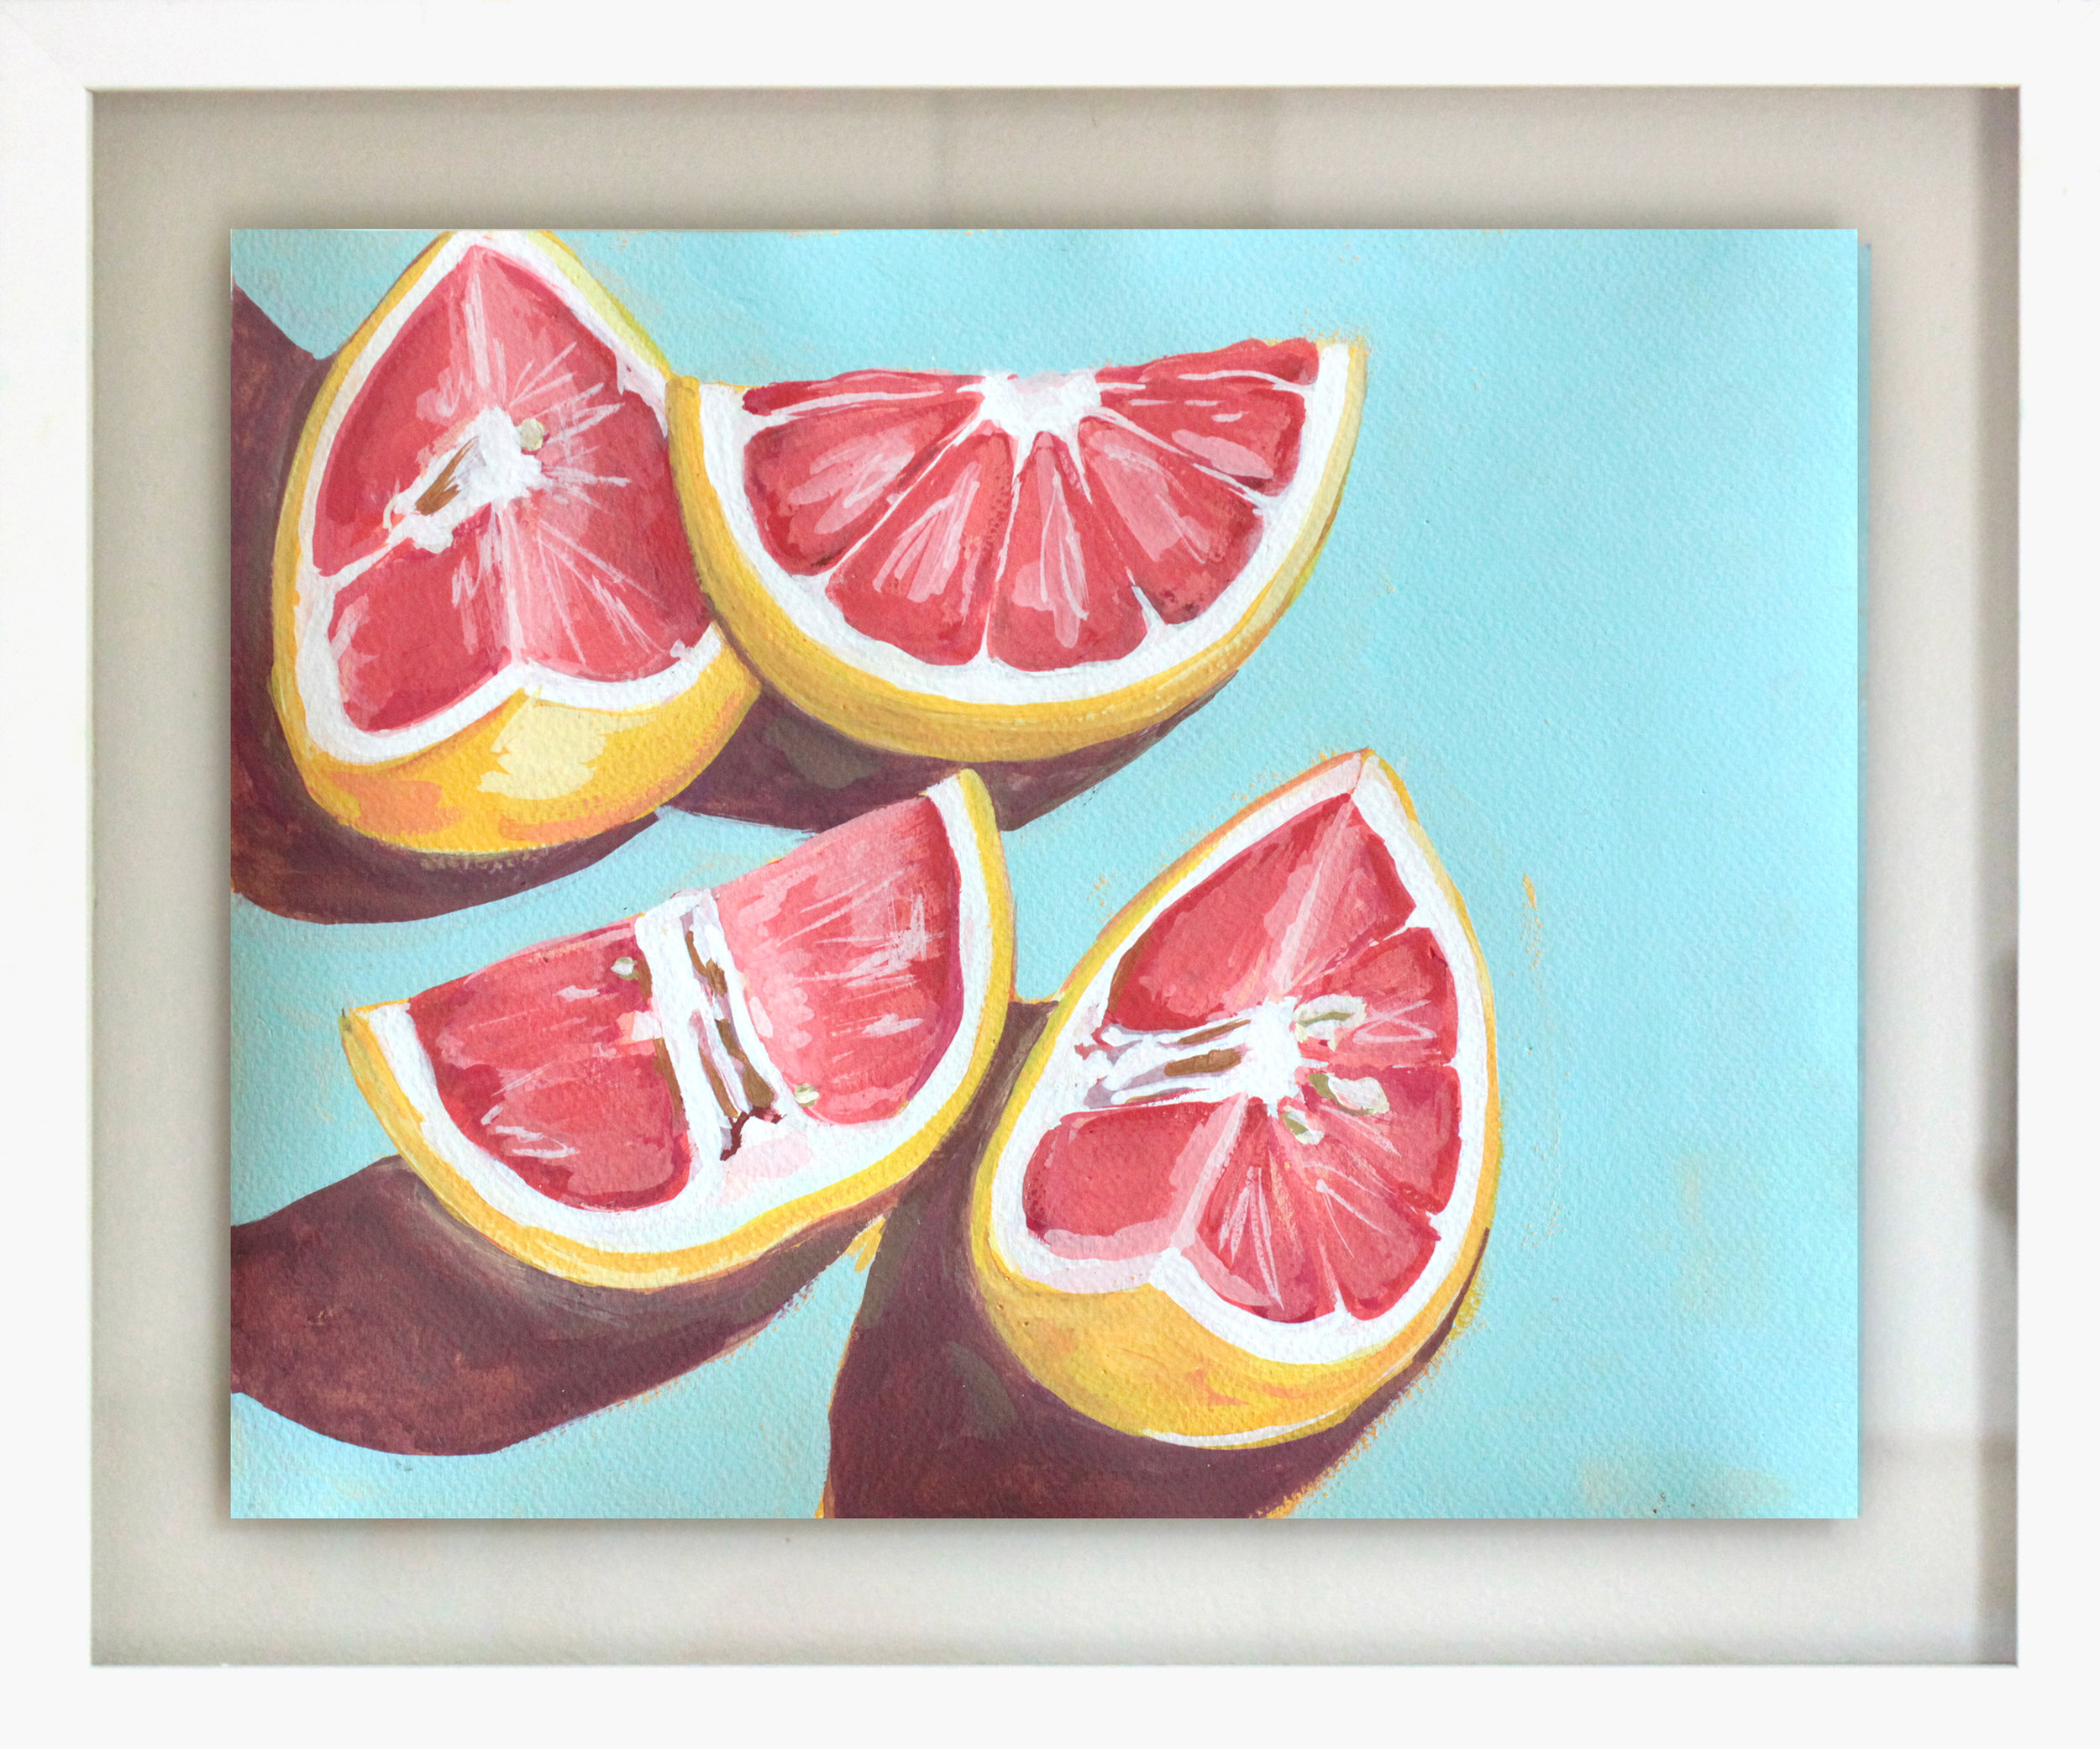 "Grapefruit + Tequila - 15.5"" x 18.5"" gouache on paper, framed$350 